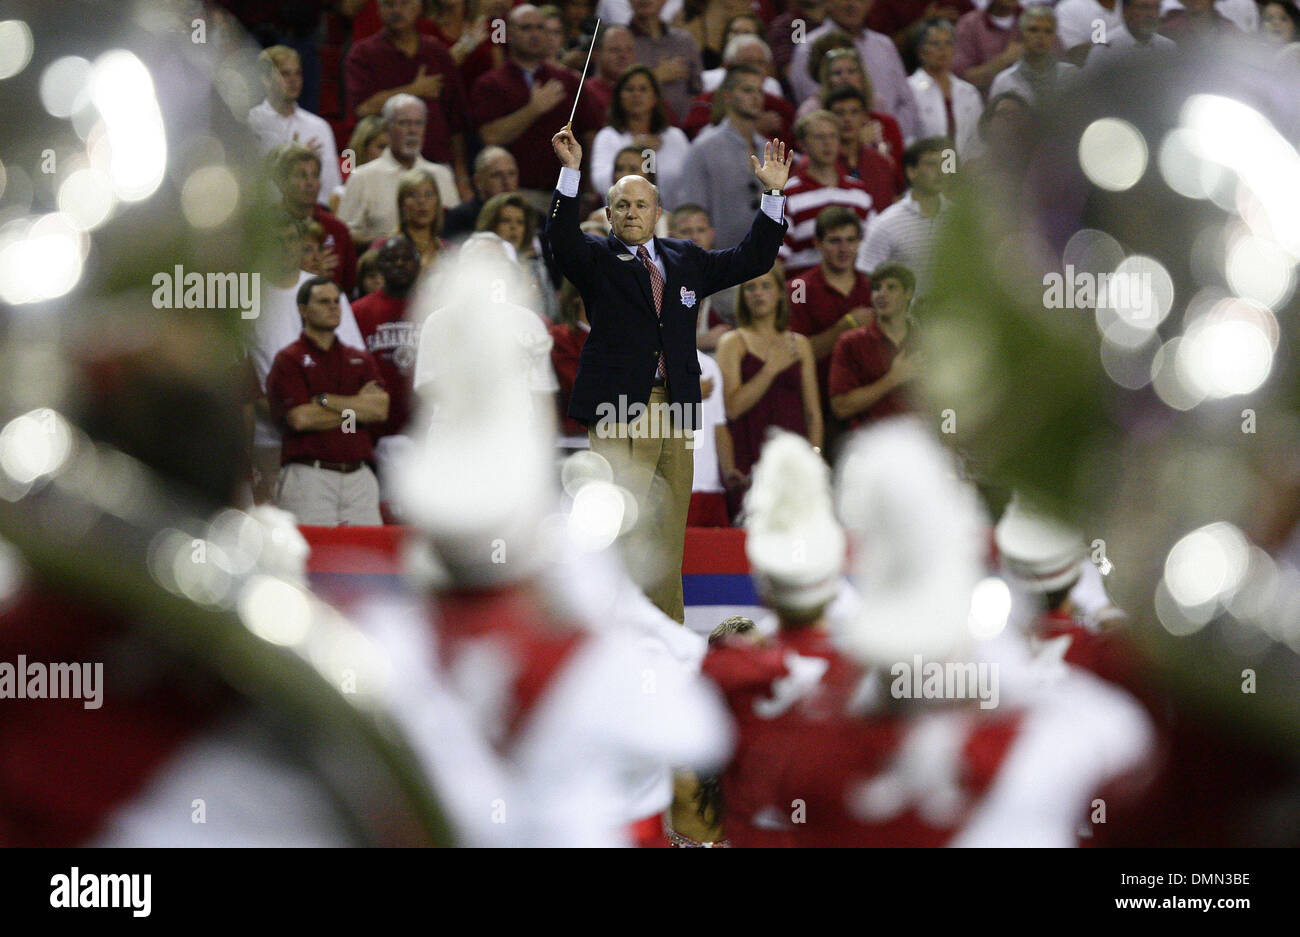 Sep 05, 2009 - Atlanta, Georgia, USA - NCAA Football - Chick-Fil-A President DAN CATHY conducts the University of Alabama and Virginia Tech marching bands before the start of the game in the Georgia Dome. (Credit Image: © Josh D. Weiss/ZUMA Press) - Stock Image